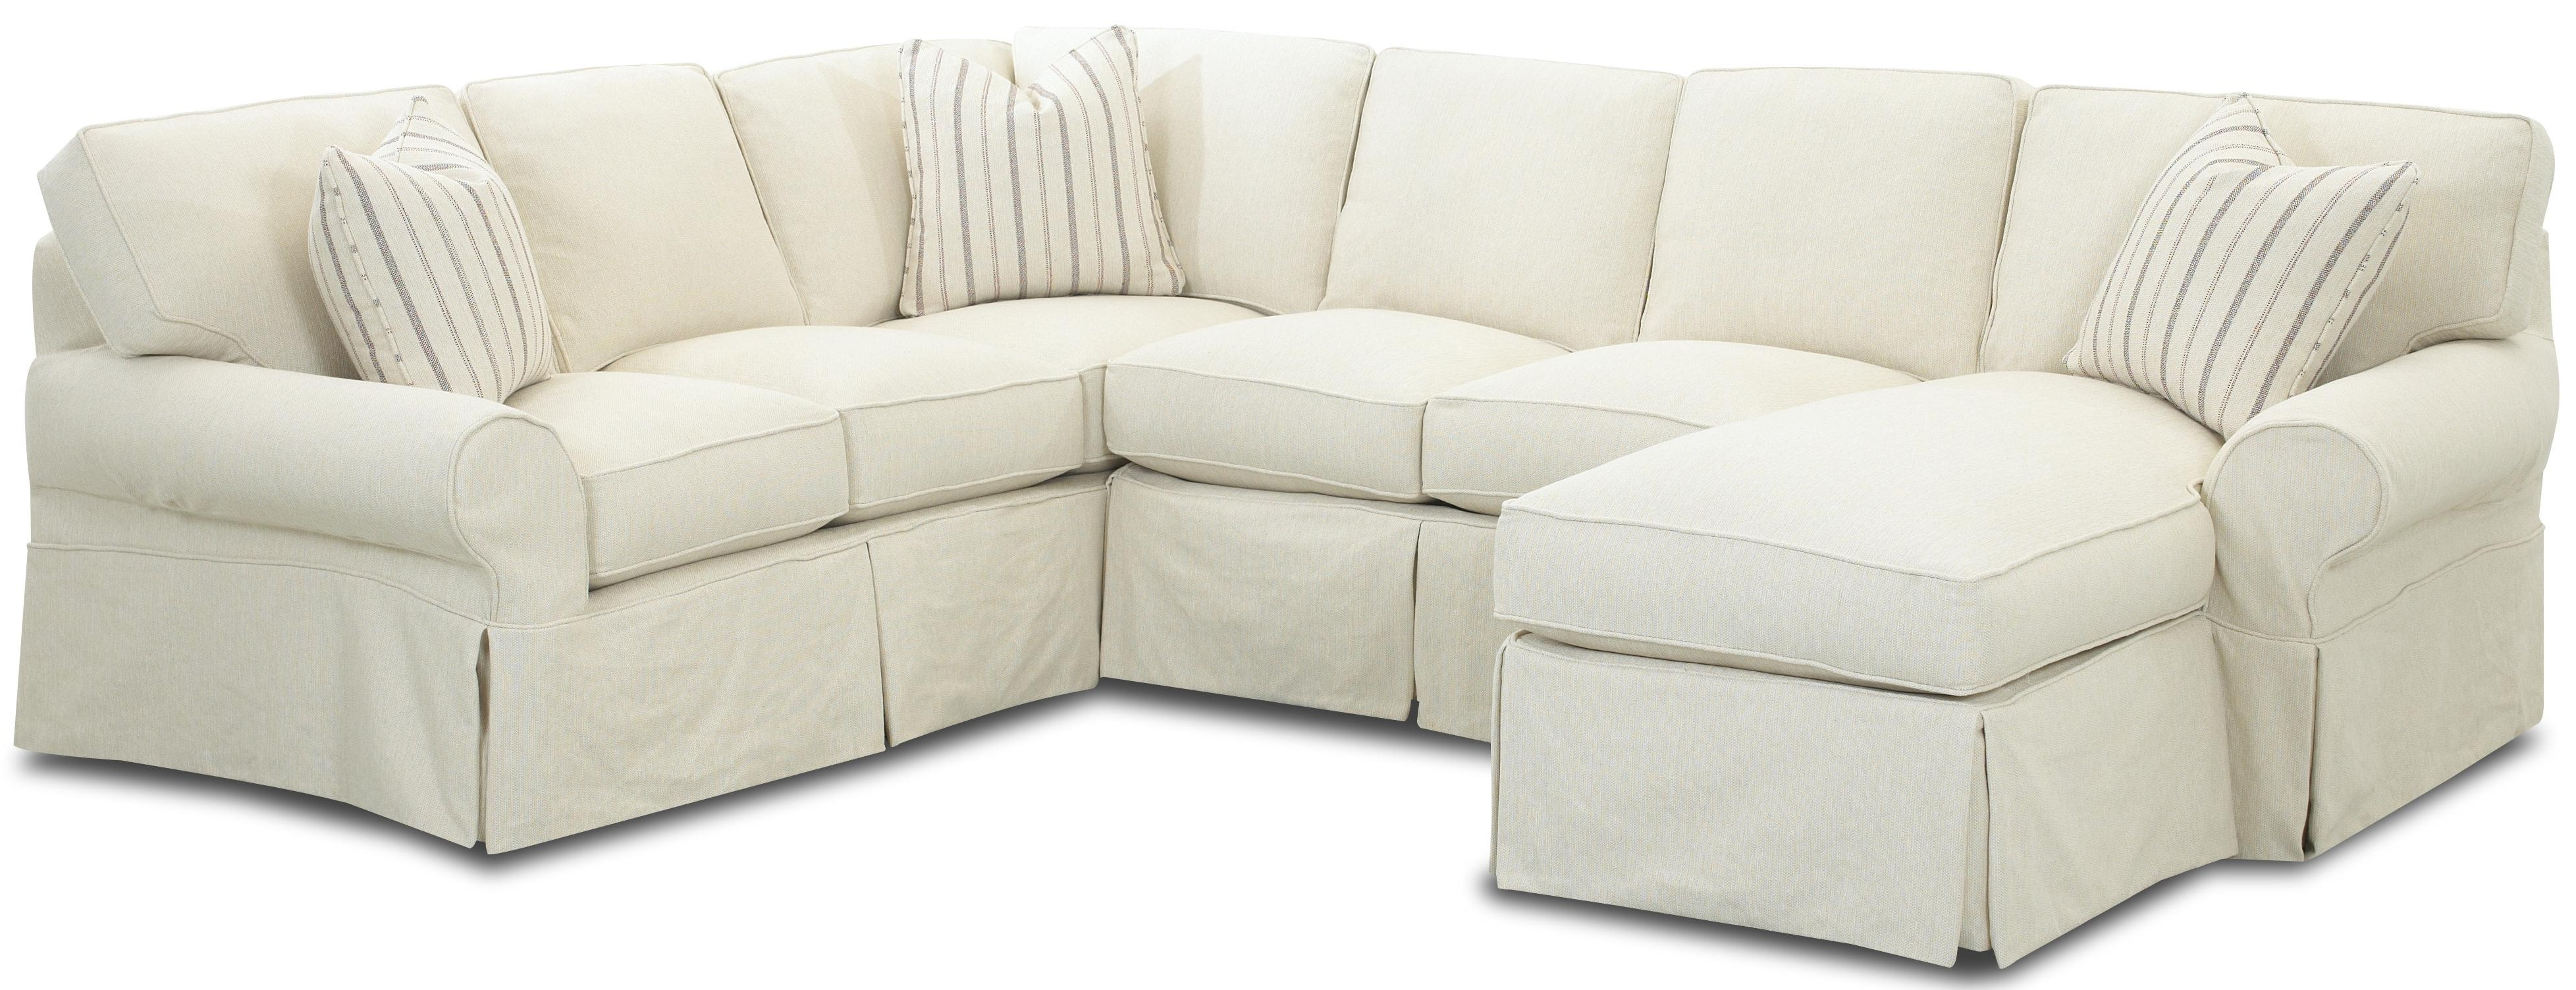 Most Popular Best Slipcover Sectional Sofa With Chaise 75 In Office Sofa Ideas Inside Chaise Slipcovers (View 9 of 15)